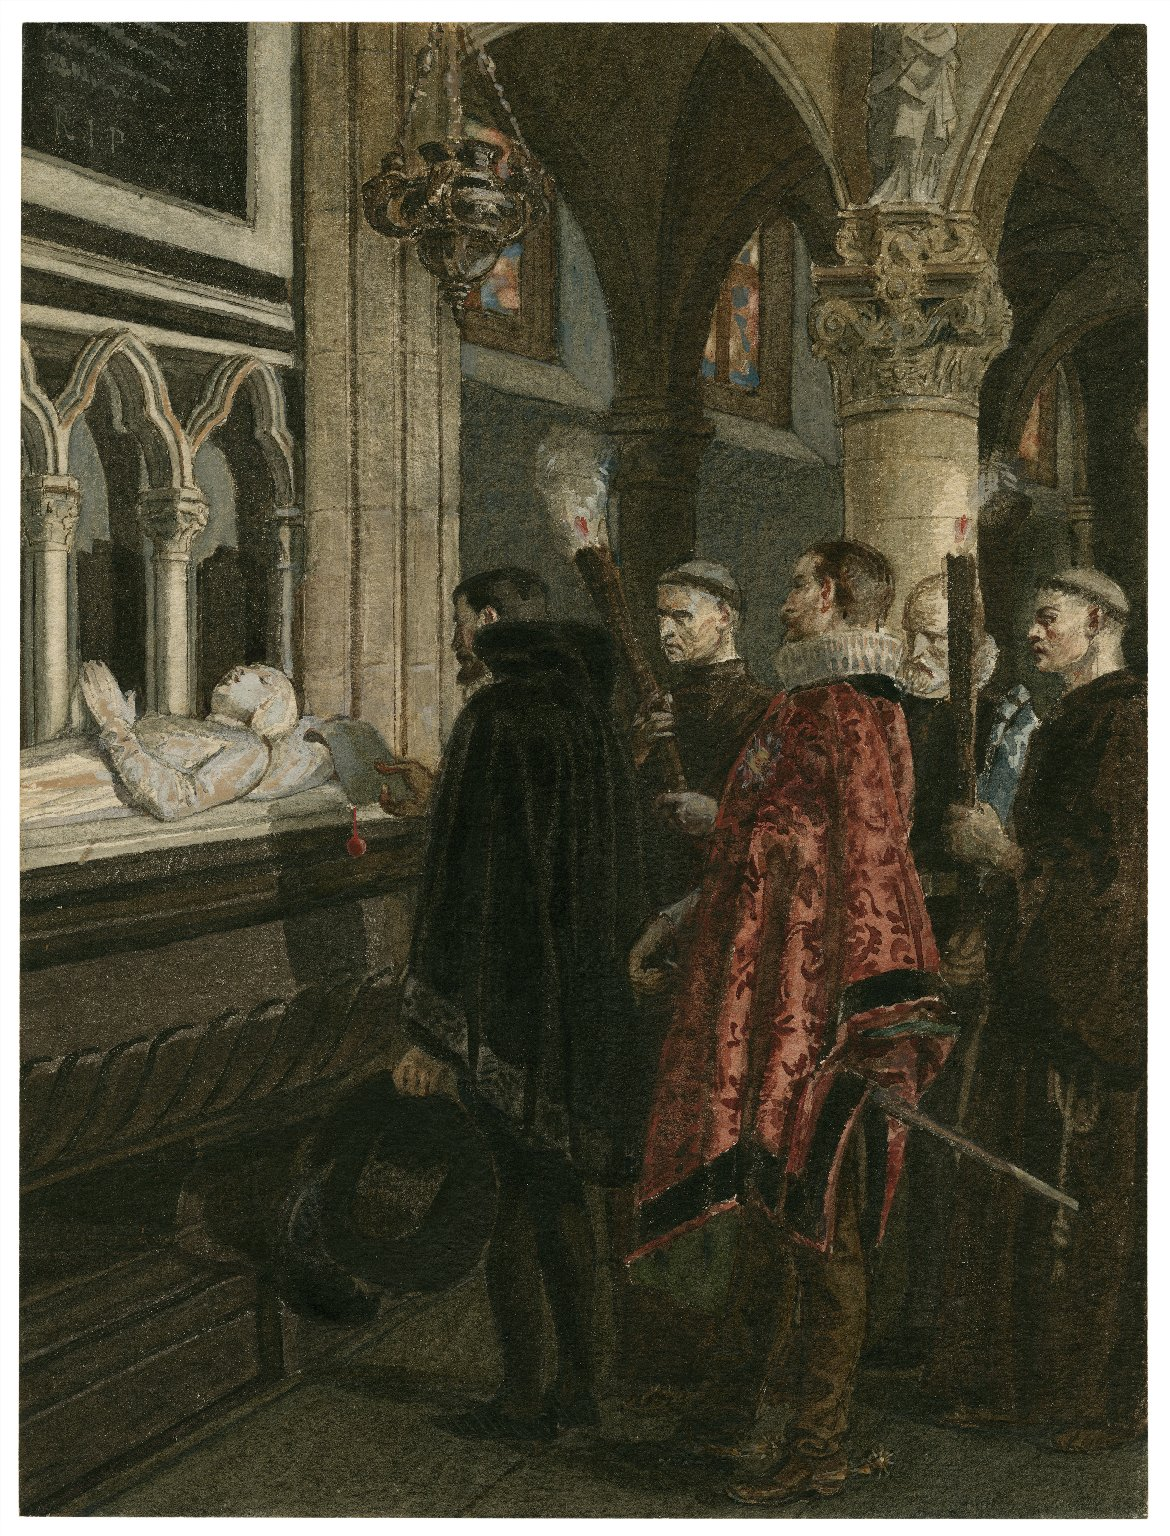 [Much ado about nothing, V, 3, The penitent Claudio, Don Pedro, etc. at the supposed tomb of Hero] [graphic] / [Alexandre Bida].